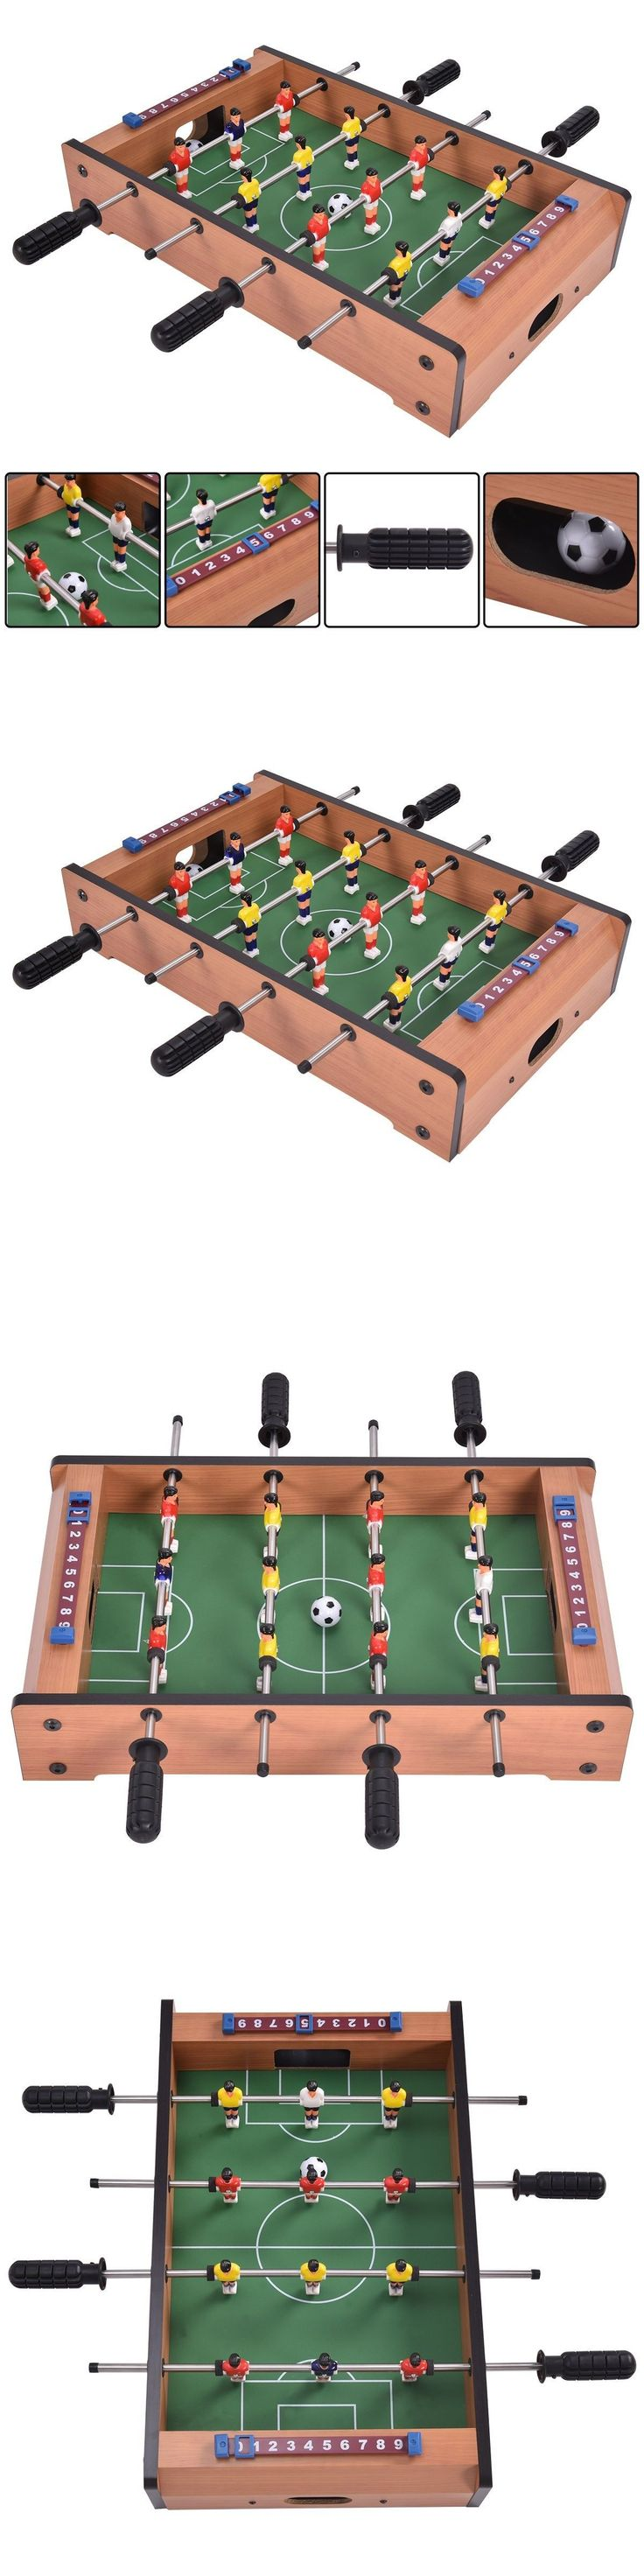 Foosball 36276: Foosball Soccer Game Table Competition Game Soccer Sport 20Inch With Accessories BUY IT NOW ONLY: $49.95